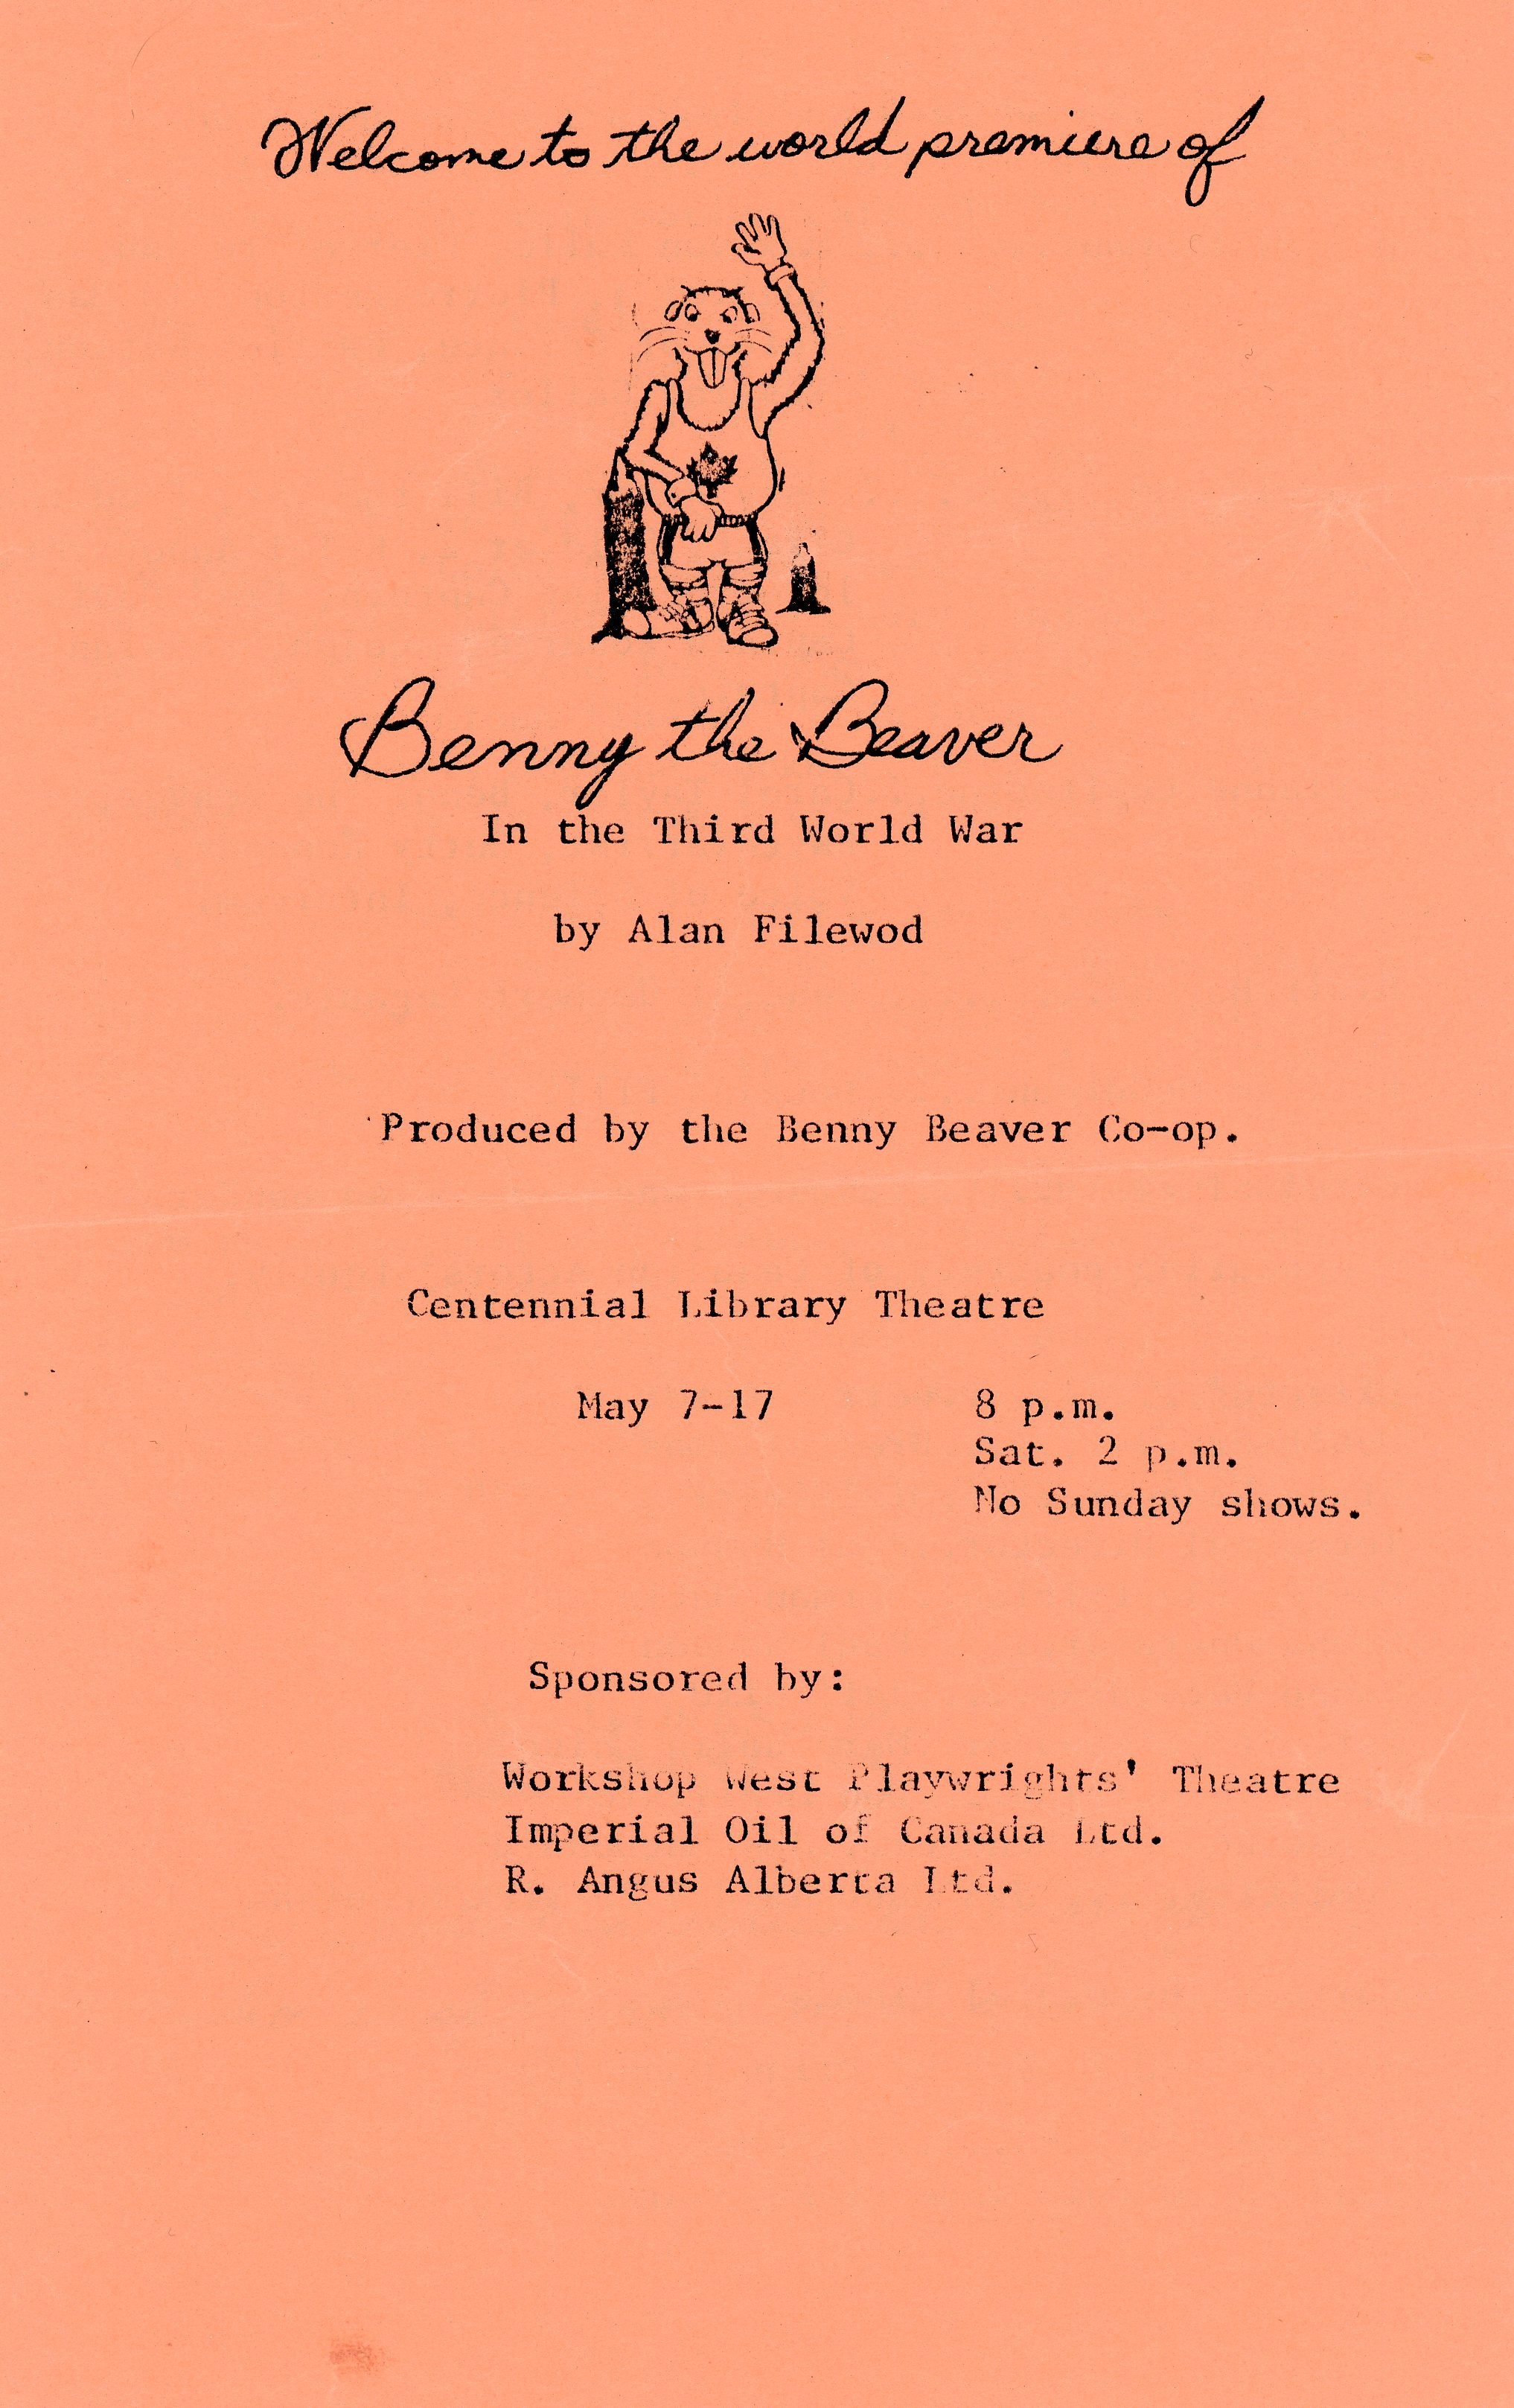 Benny the Beaver in the Third World War (May, 1980) - Program Cover.jpg